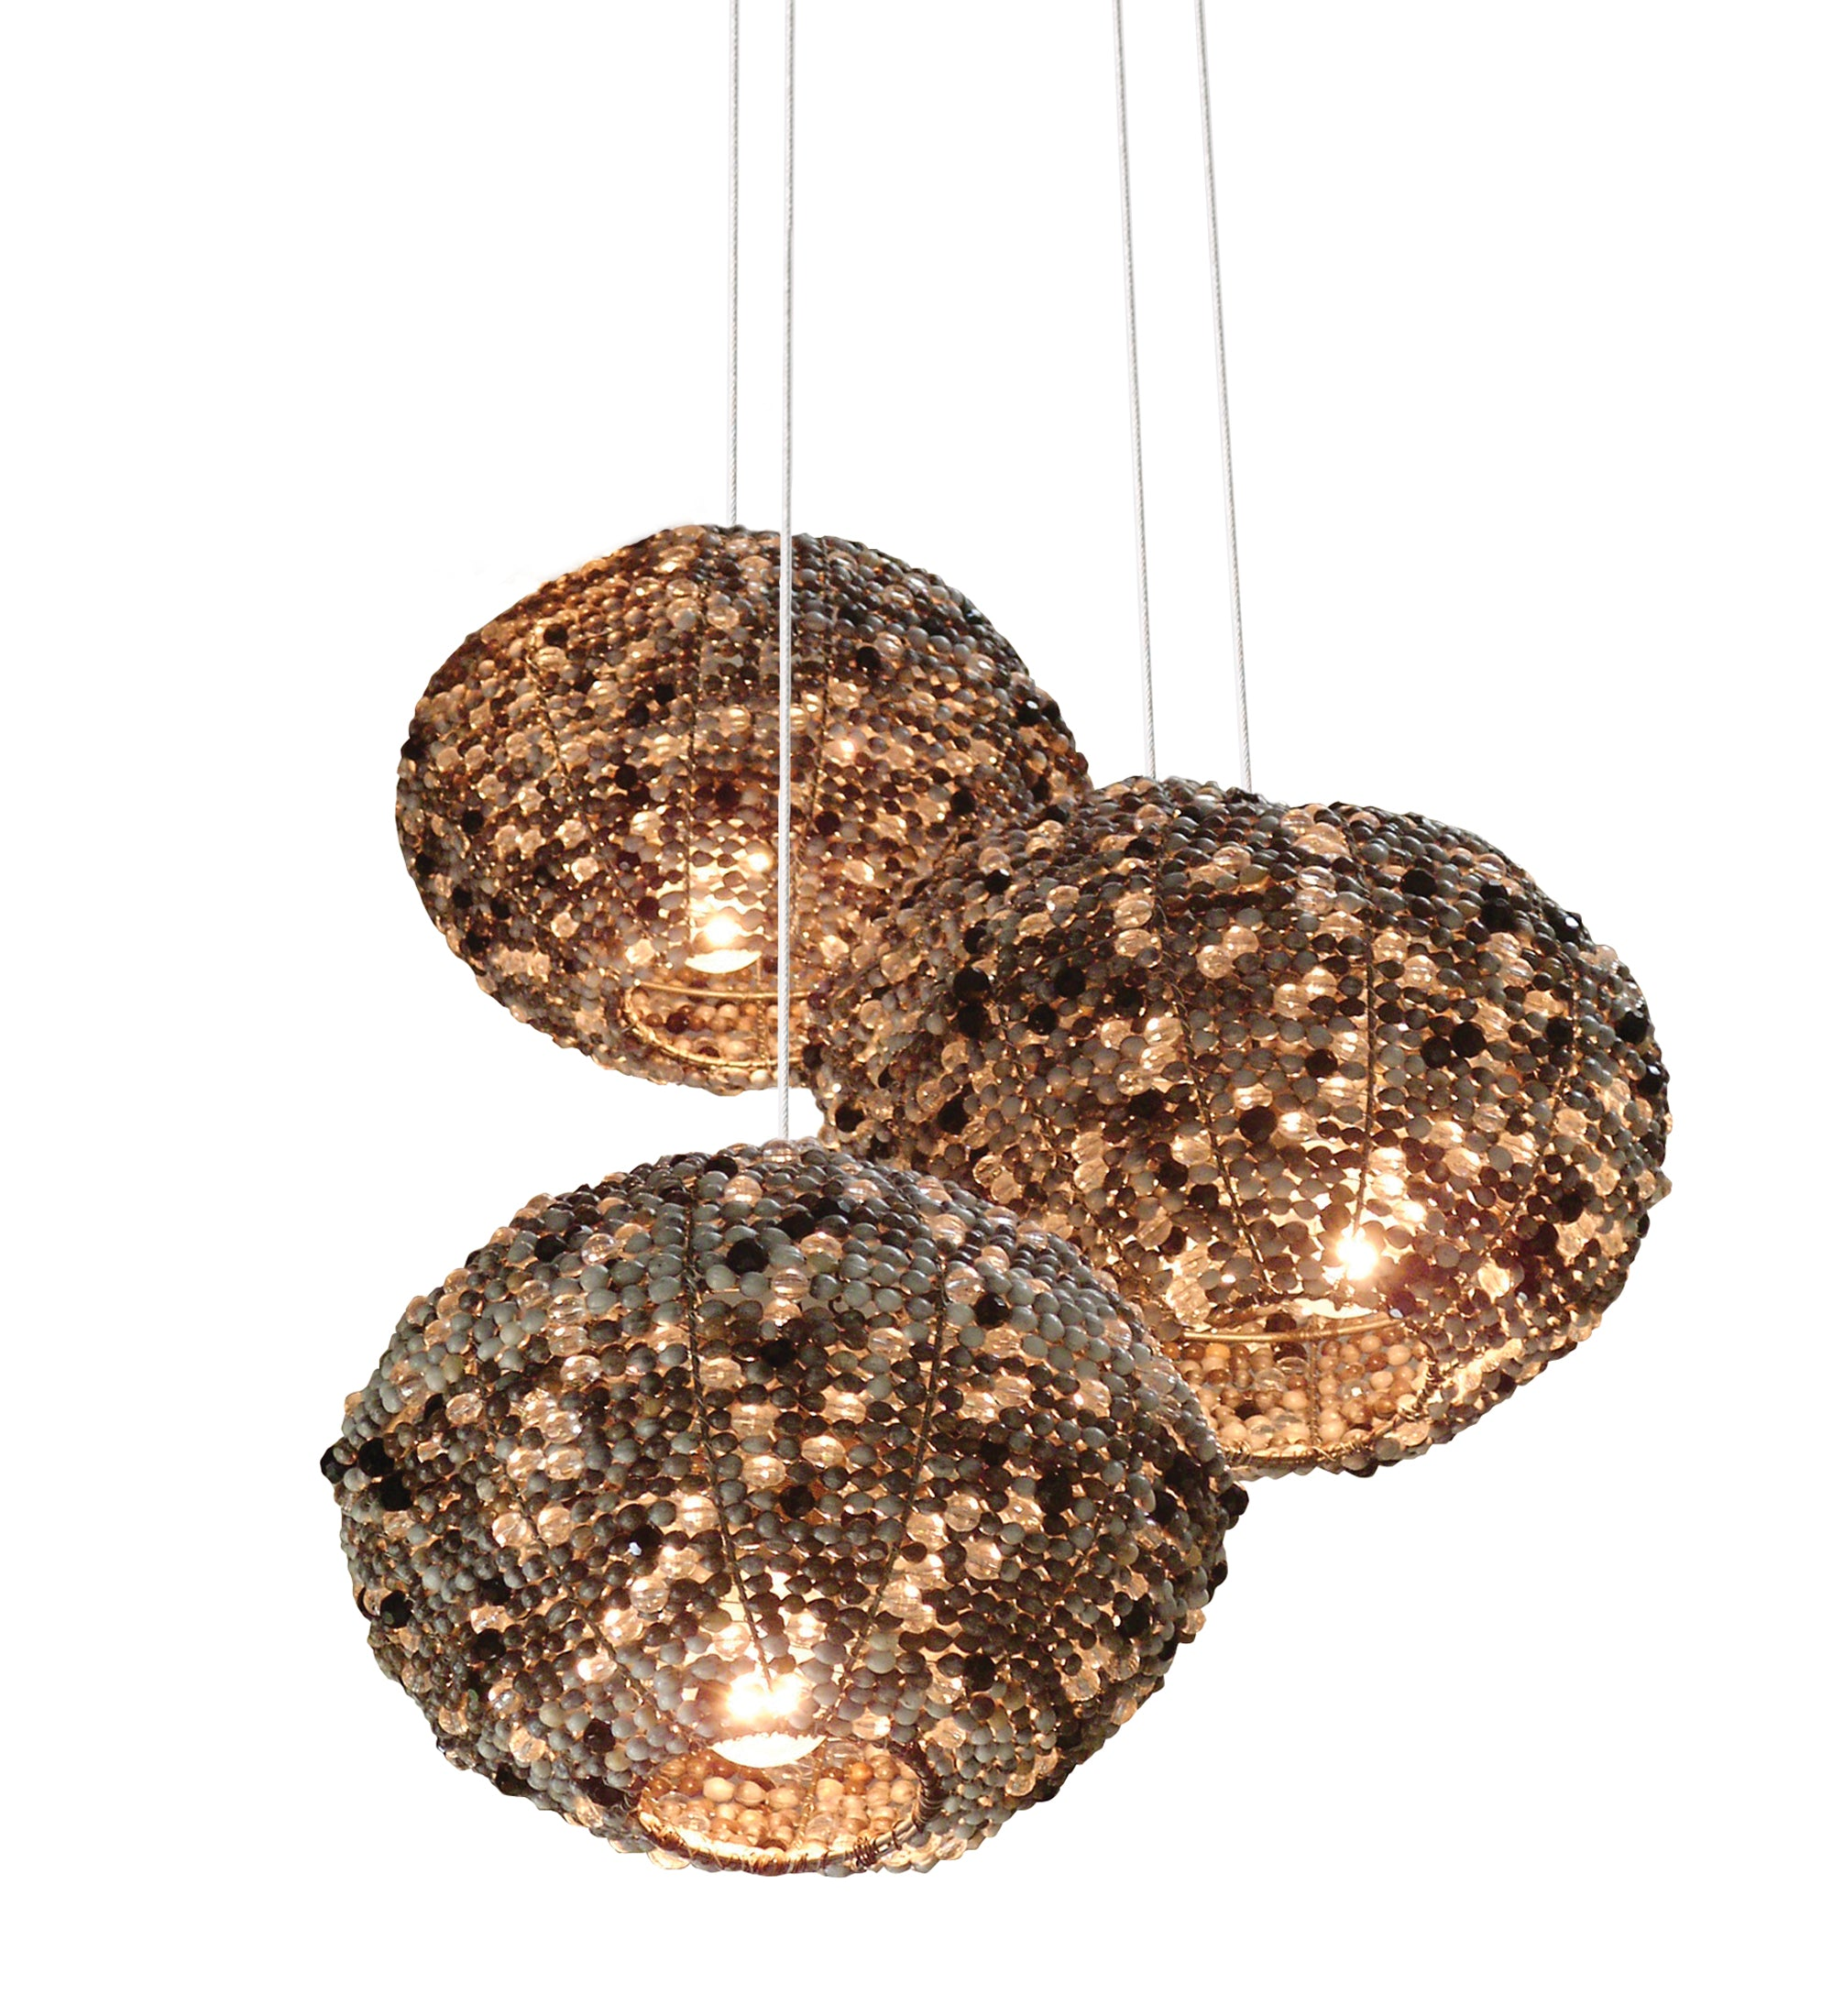 Zulu seed crystal pendant light. African light. Bespoke lighting. Lodge lighting